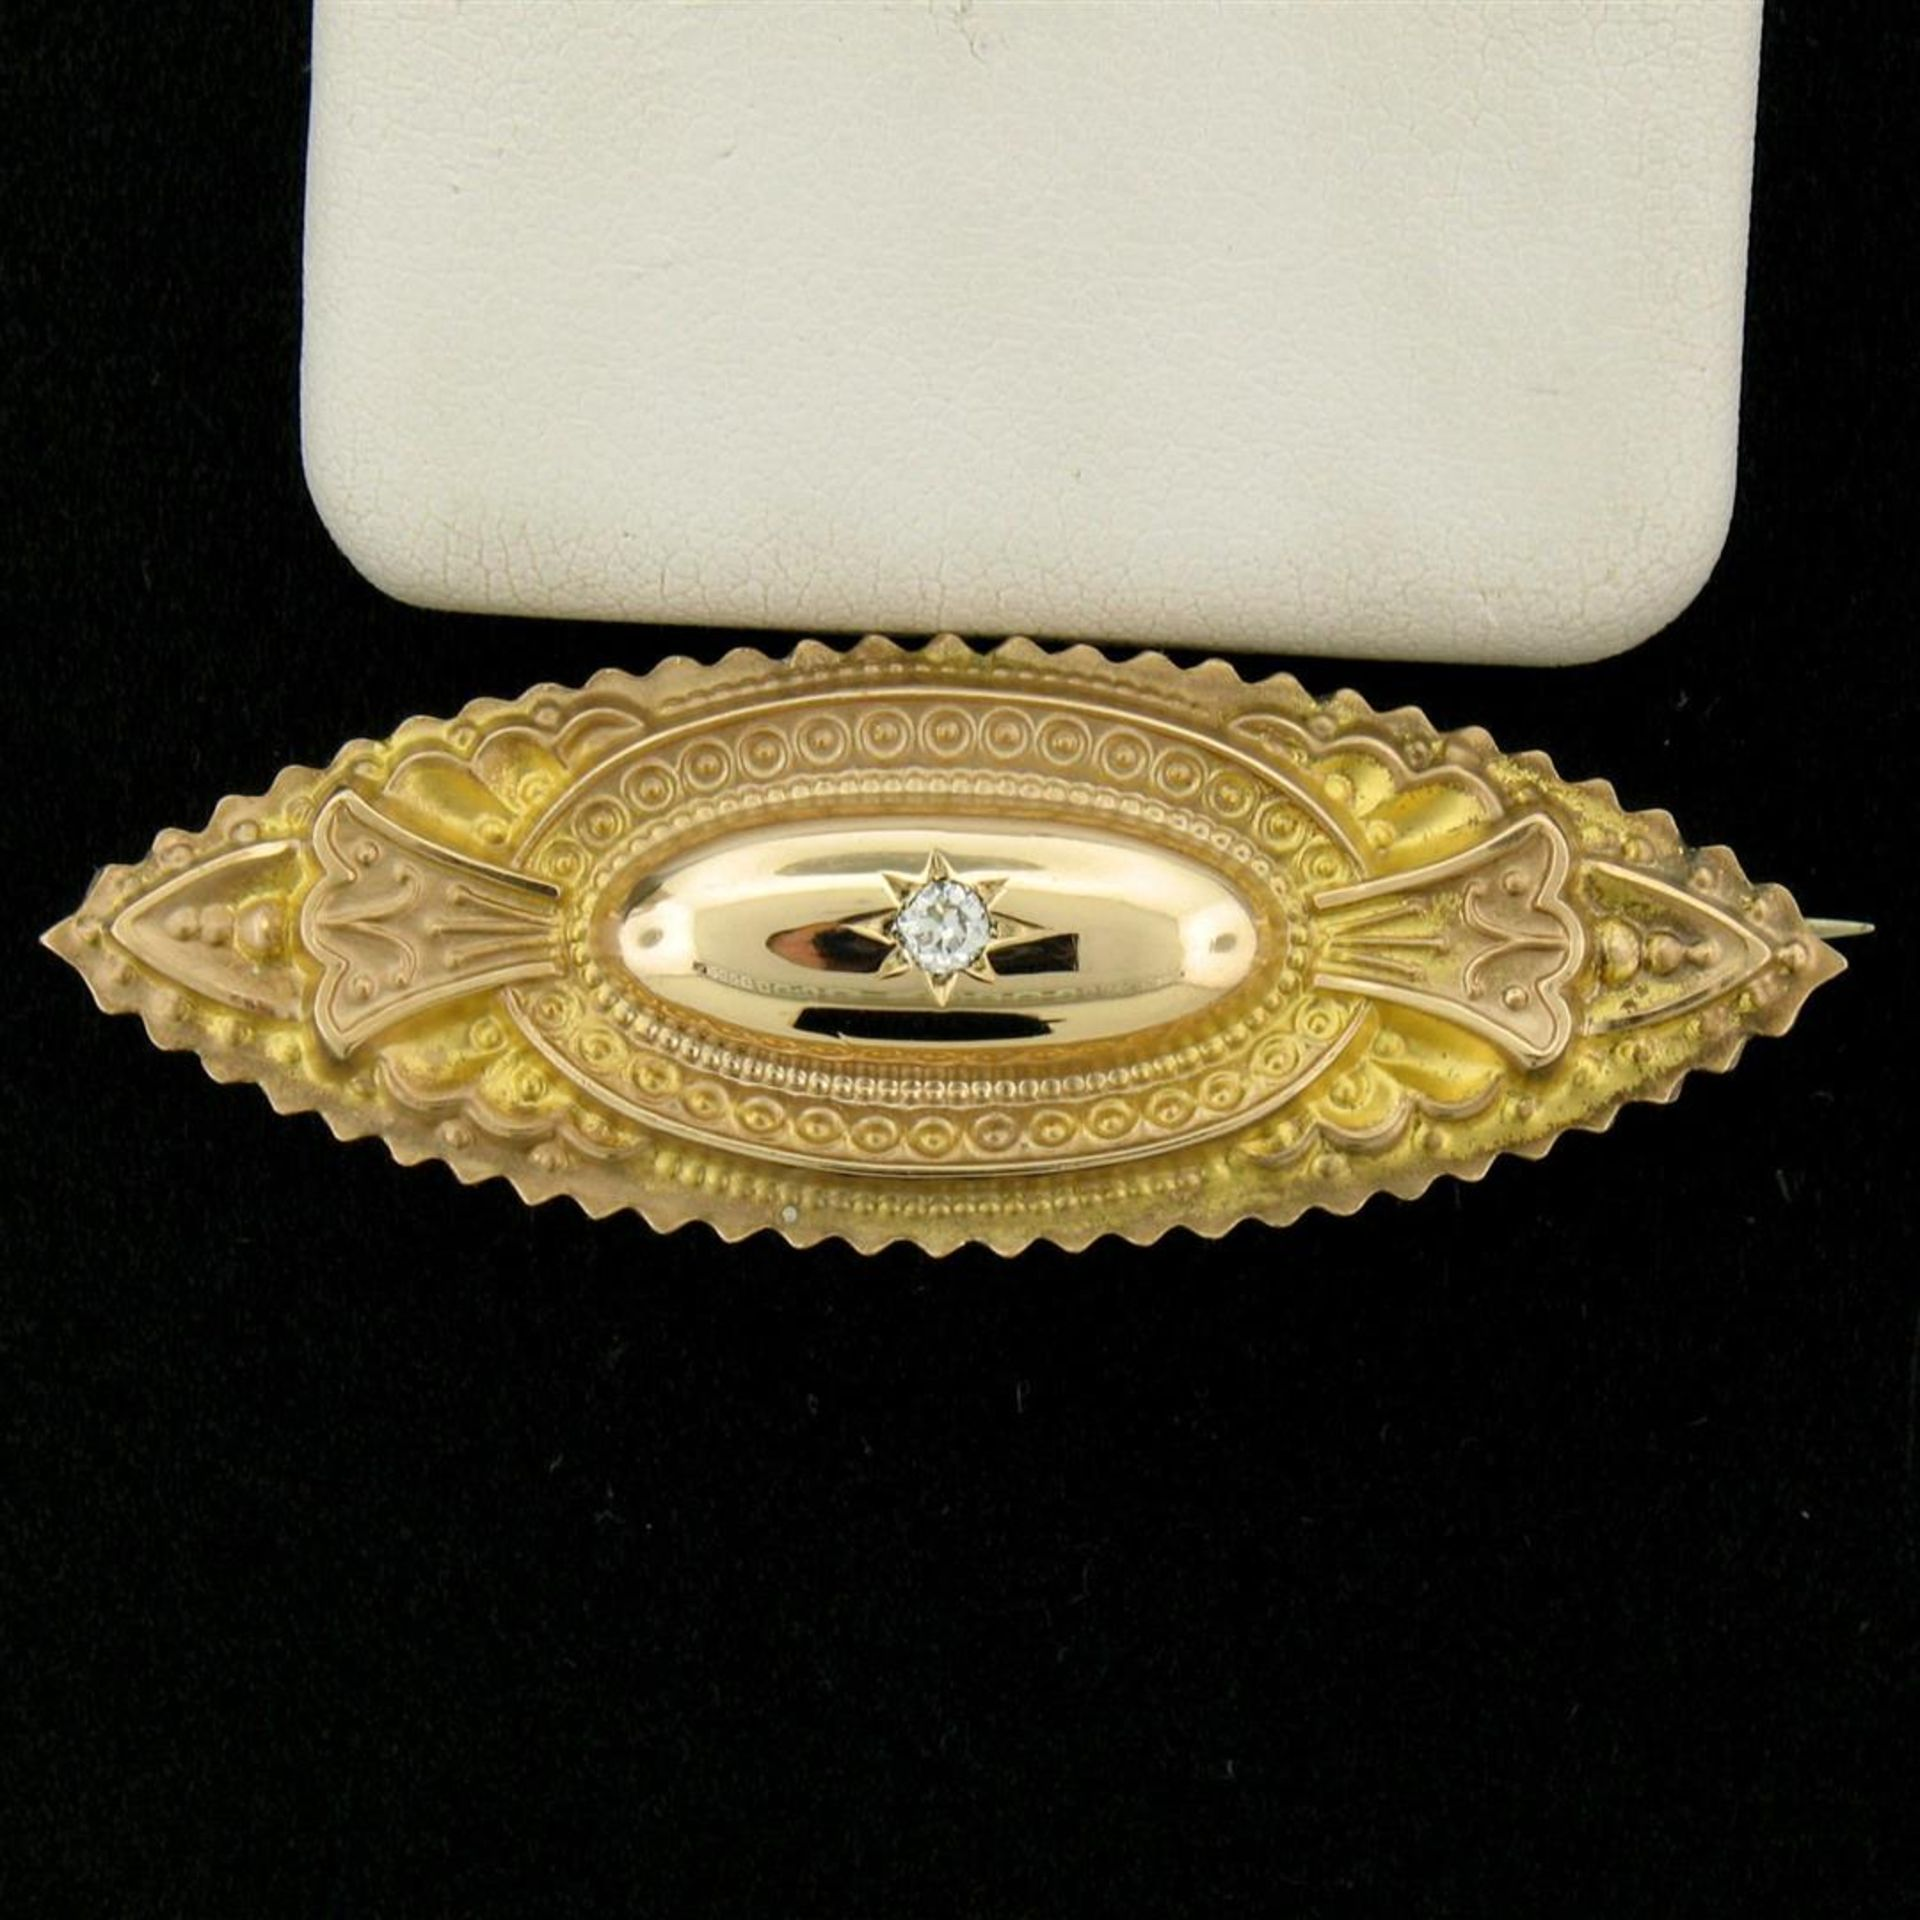 9k Yellow Gold .10 ctw Diamond Marquise Shaped Etched Brooch Pin - Image 4 of 9